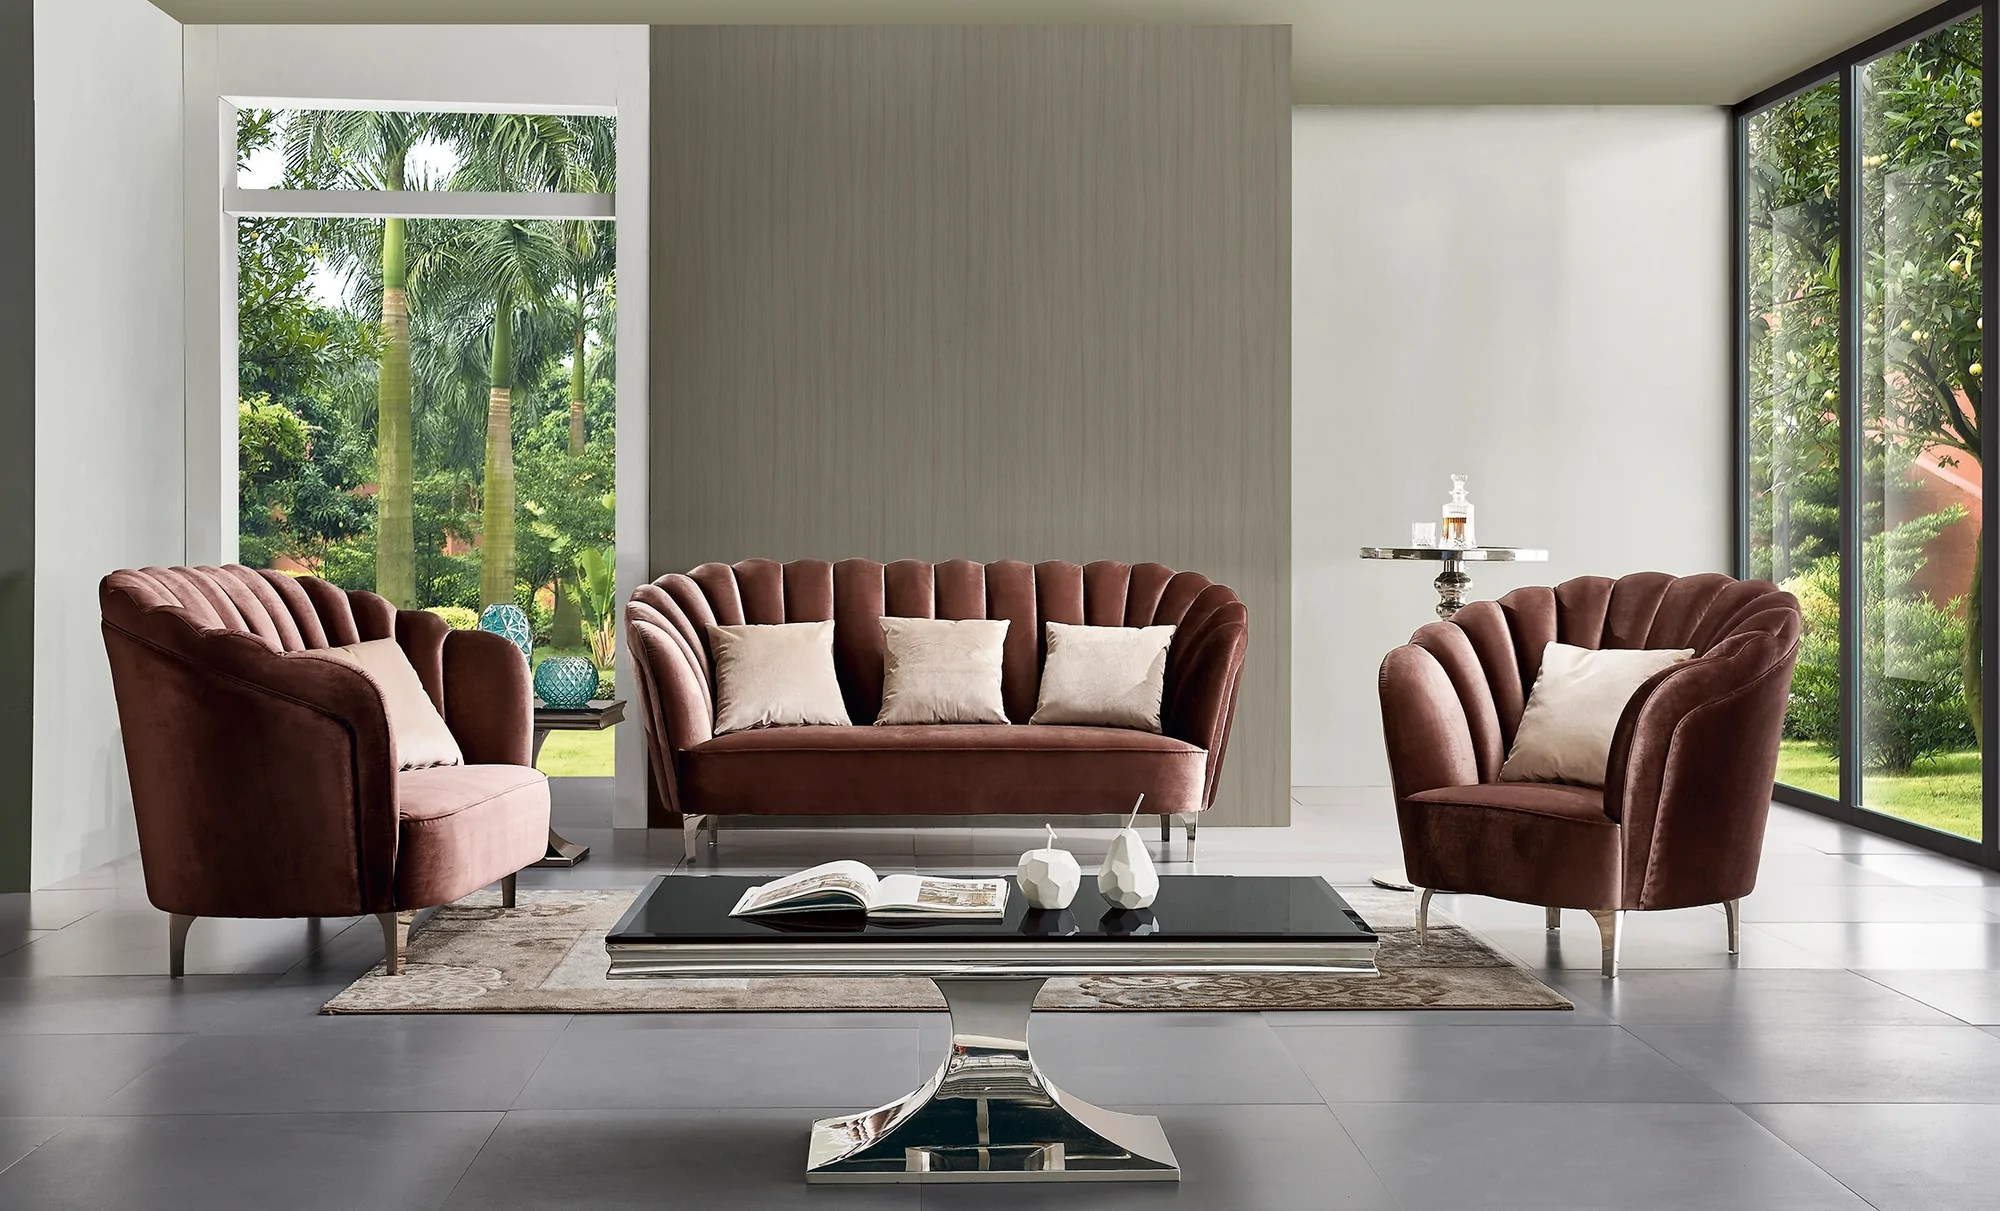 Sofa Leonie Interio Hollywood Interiors Beautiful Furniture Lighting And